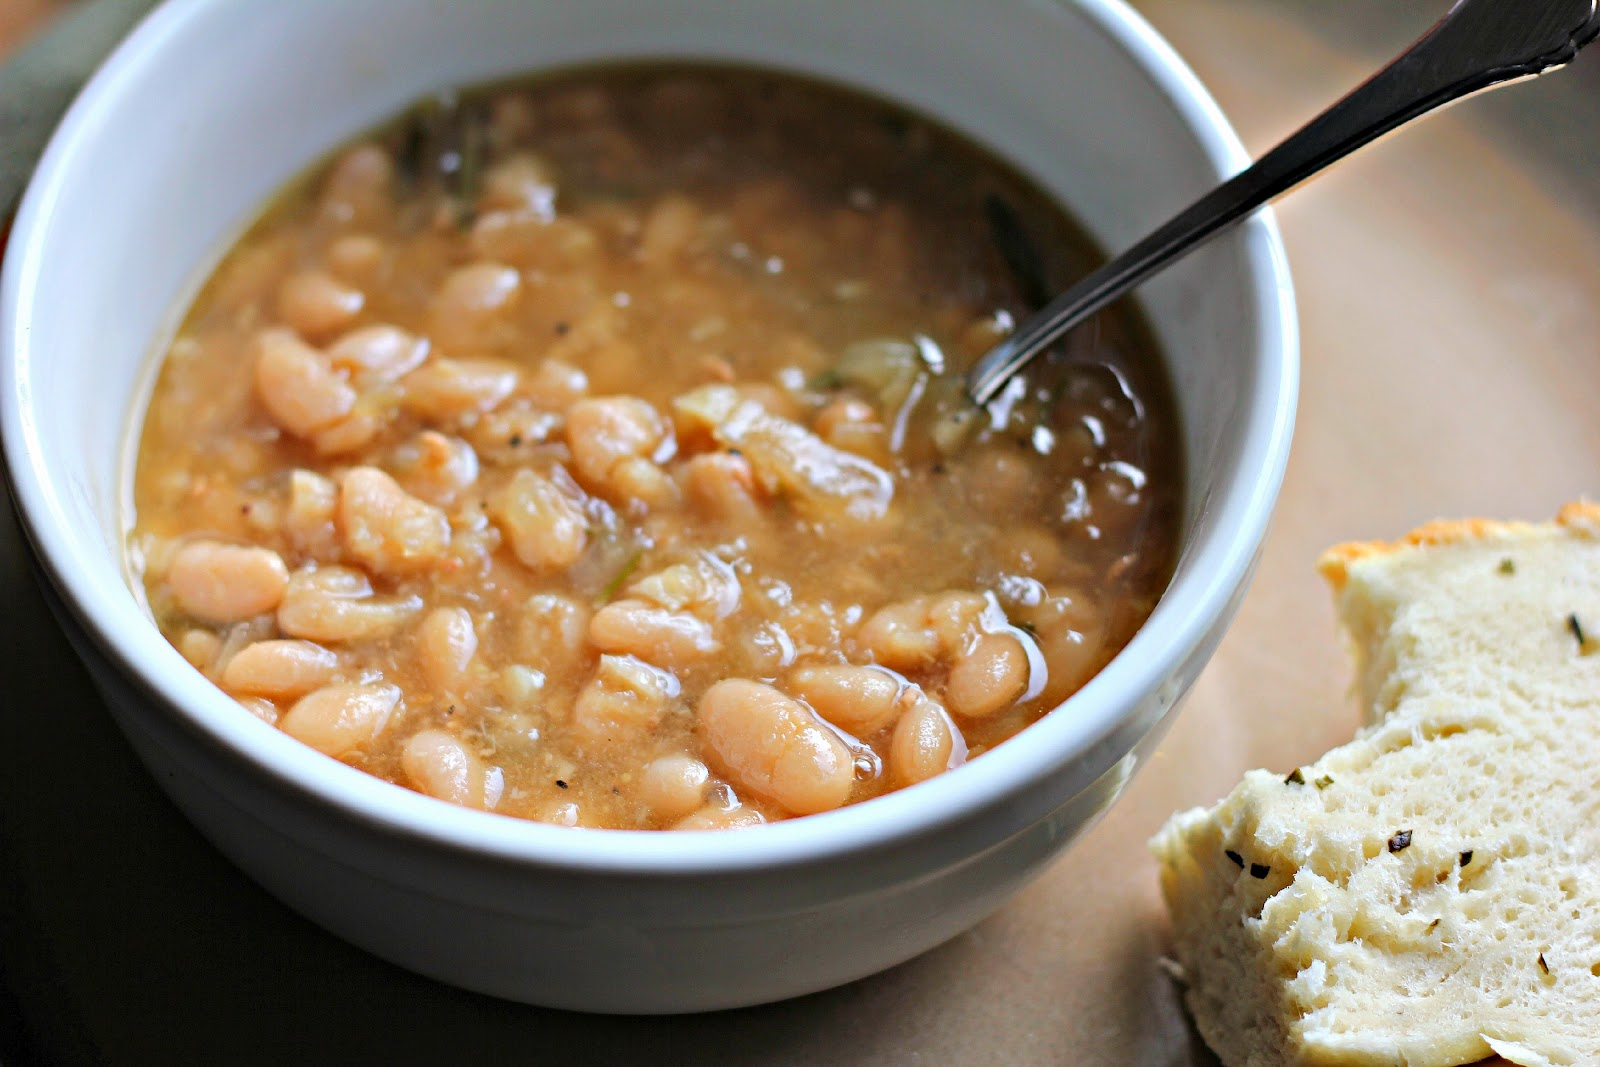 My Life On A Plate: Tuscan White Bean Soup